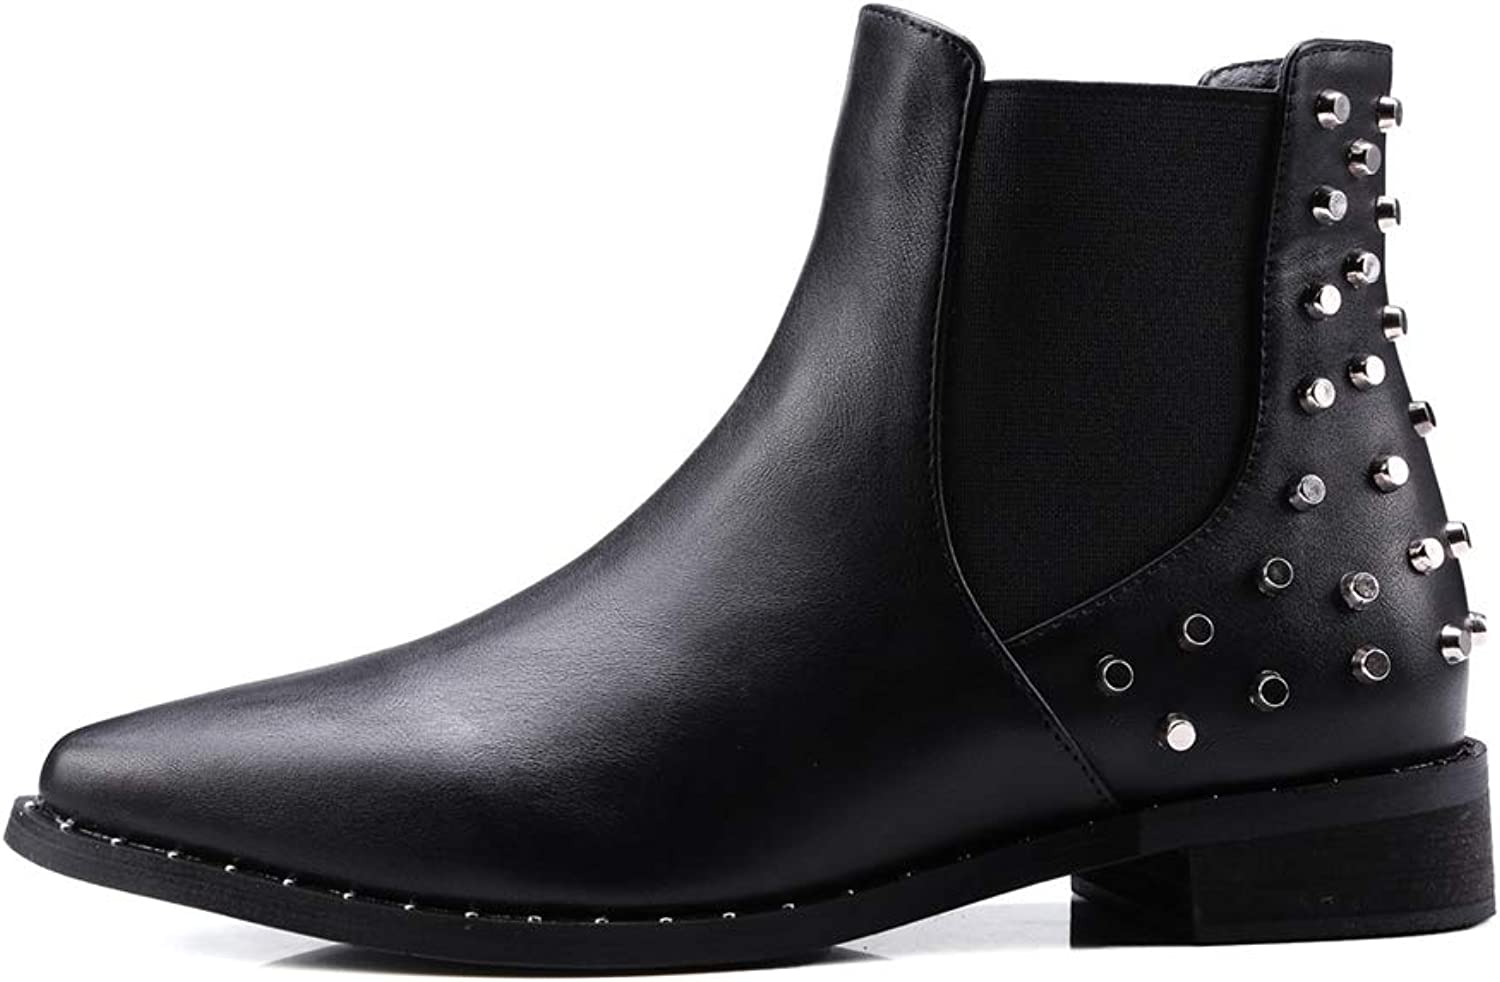 Believed Plus Size Women Flat Ankle Snow Motorcycle Boots Female Suede Leather Lace-Up Boot